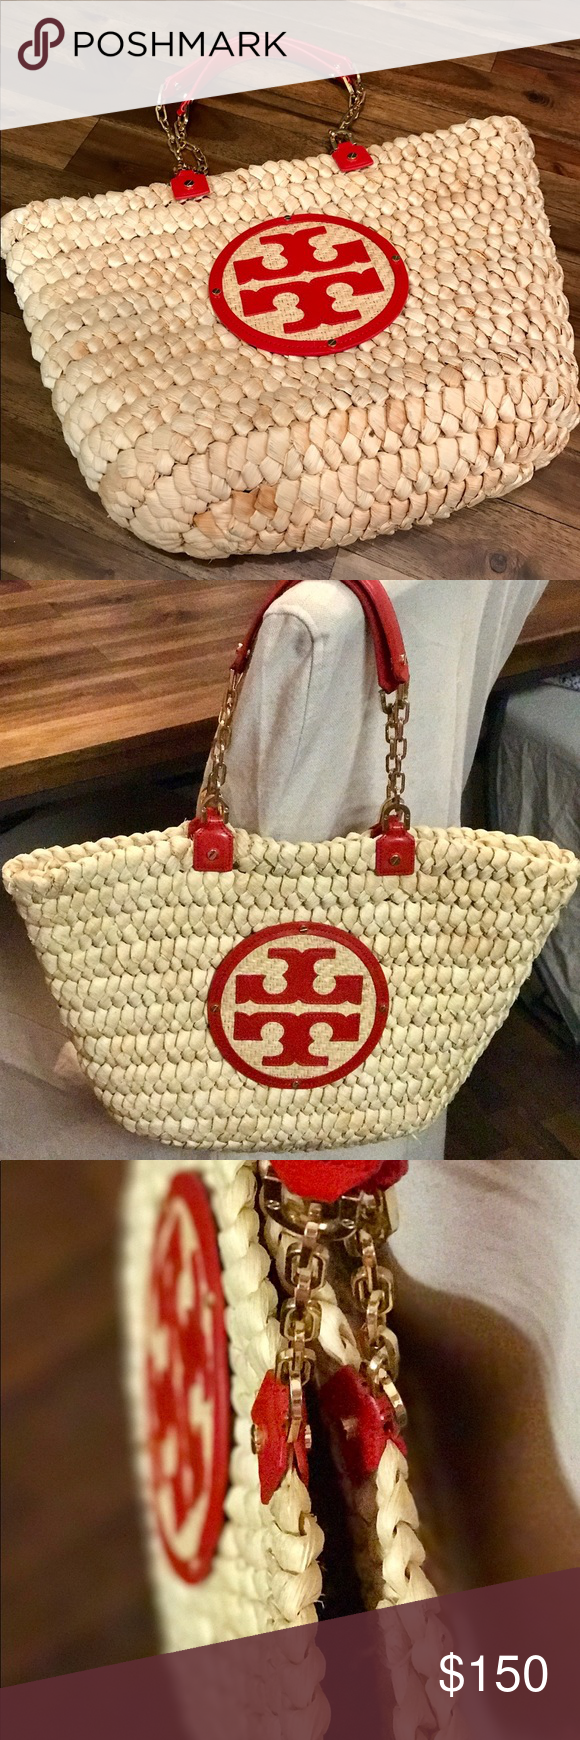 0762834b56c Tory Burch Audrey Straw Tote - Great Condition! The woven straw design of  the Tory